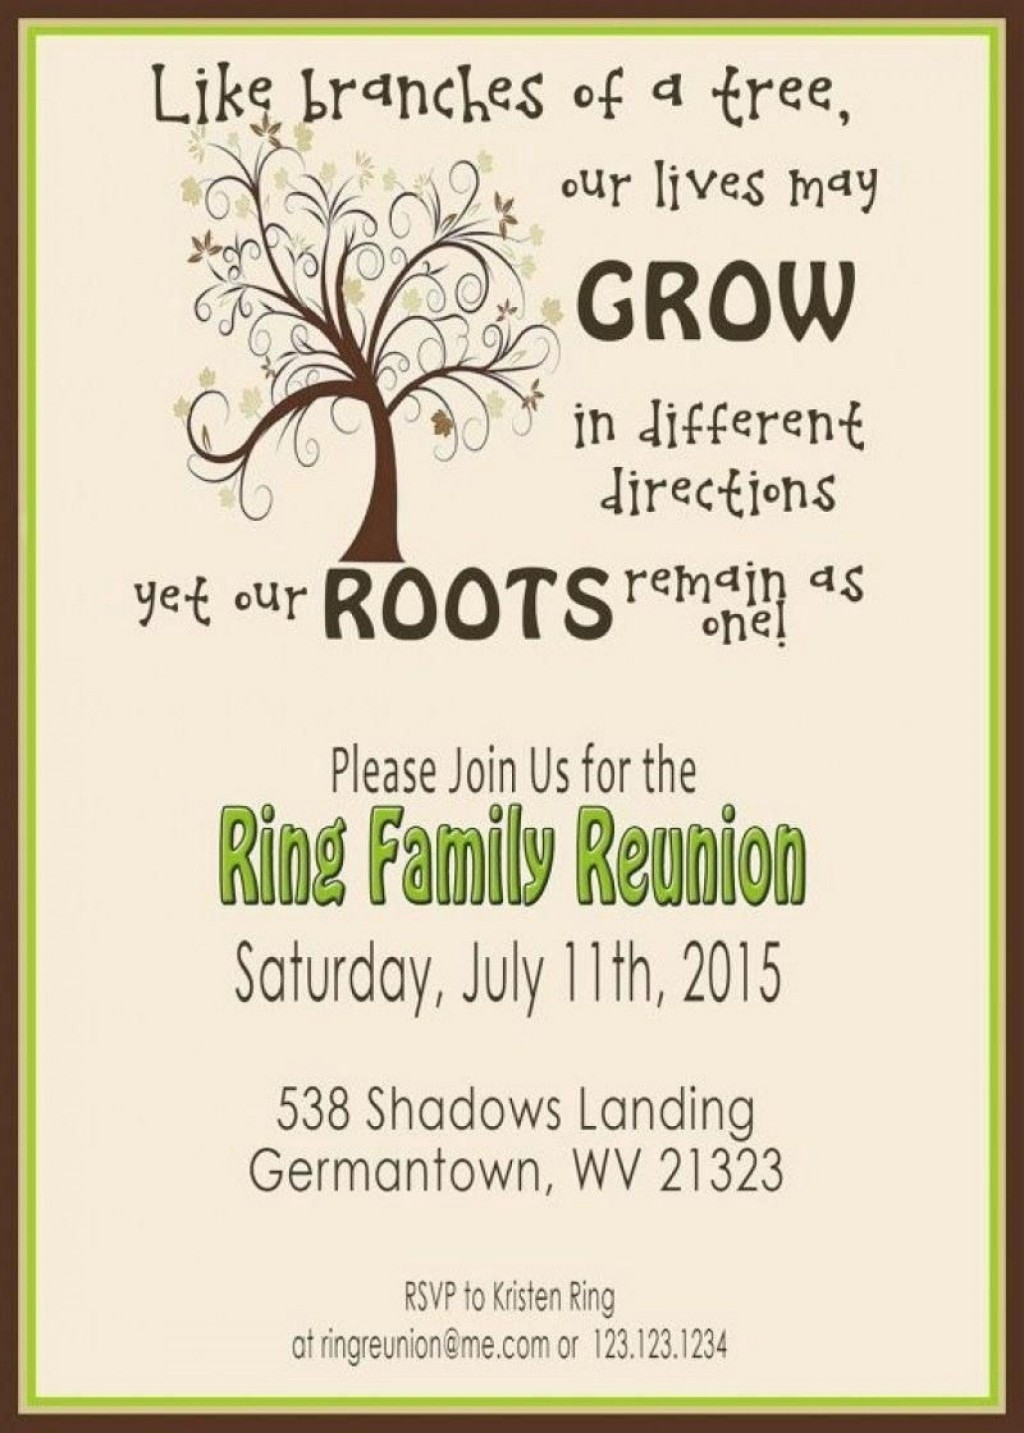 009 Awful Family Reunion Flyer Template Word Example Large